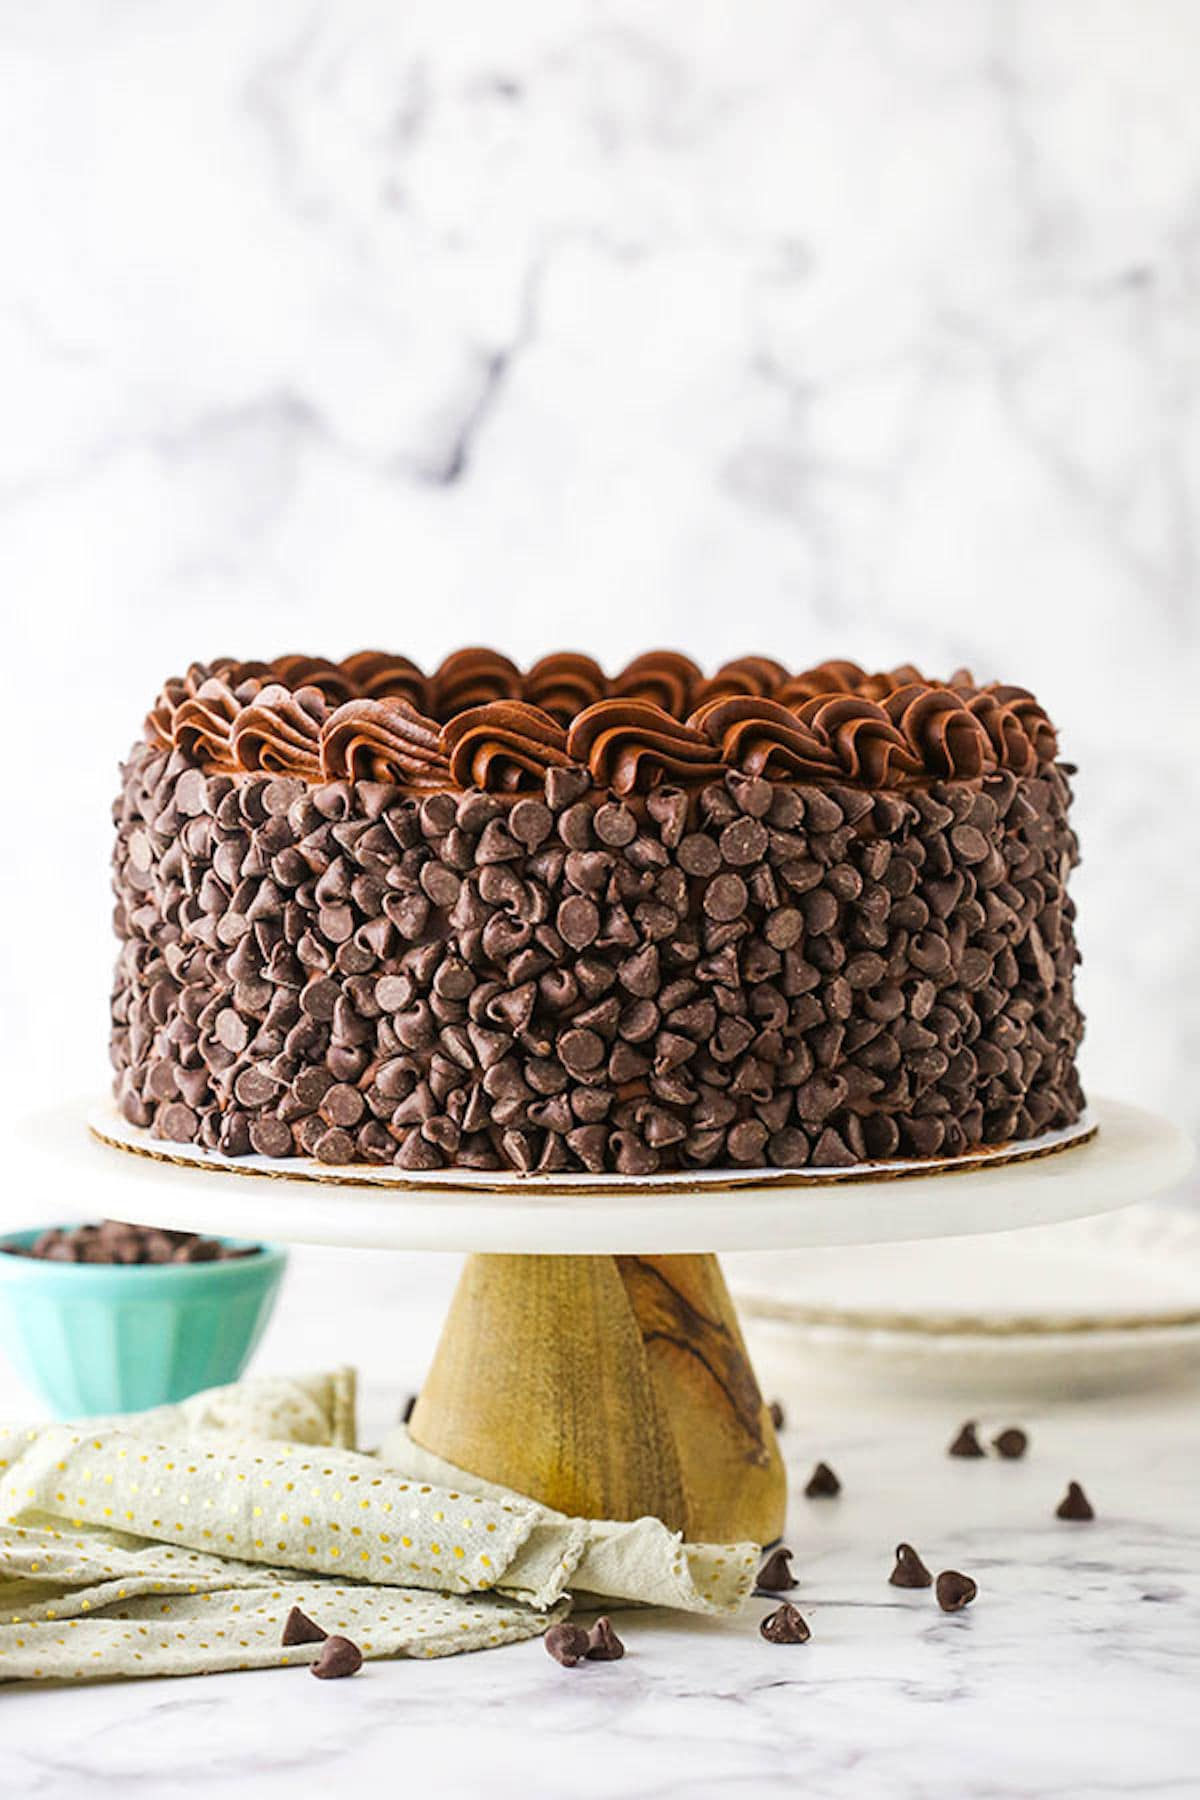 A Wooden Cake Stand Holding a Hershey's Chocolate Cake Cheesecake